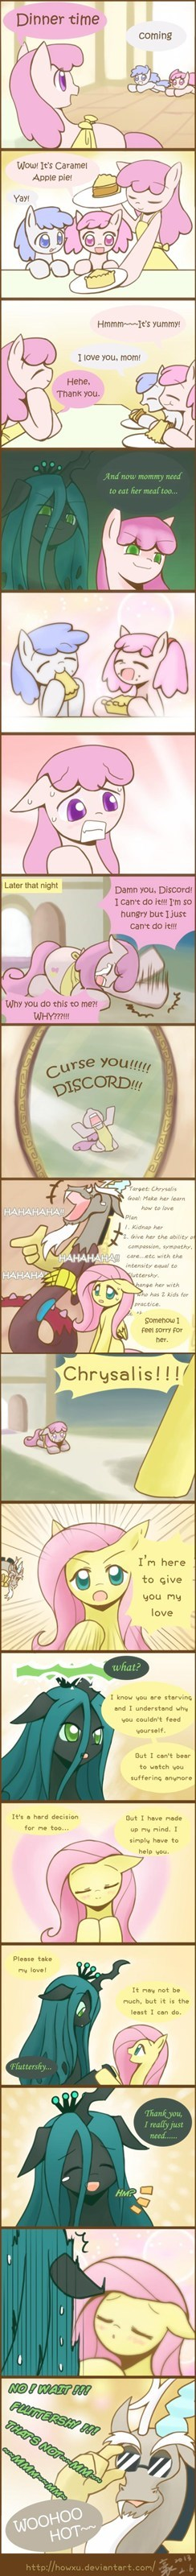 Even Chrysalis Needs Love